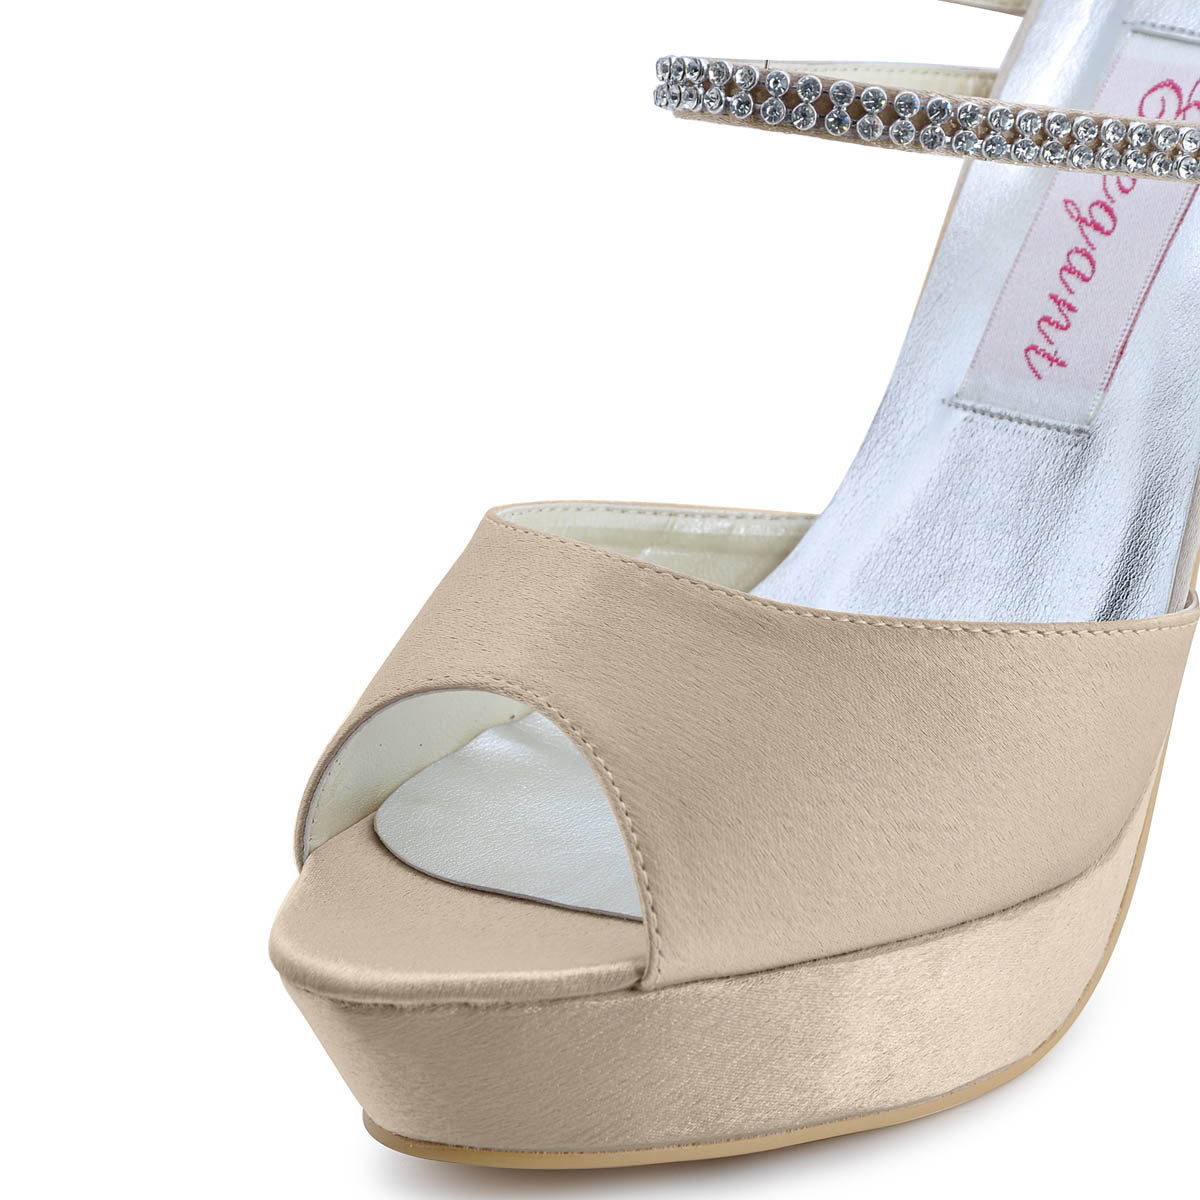 Fashion Party High With Waterproof Shoes Wedding Shoes Foot Ring Strap